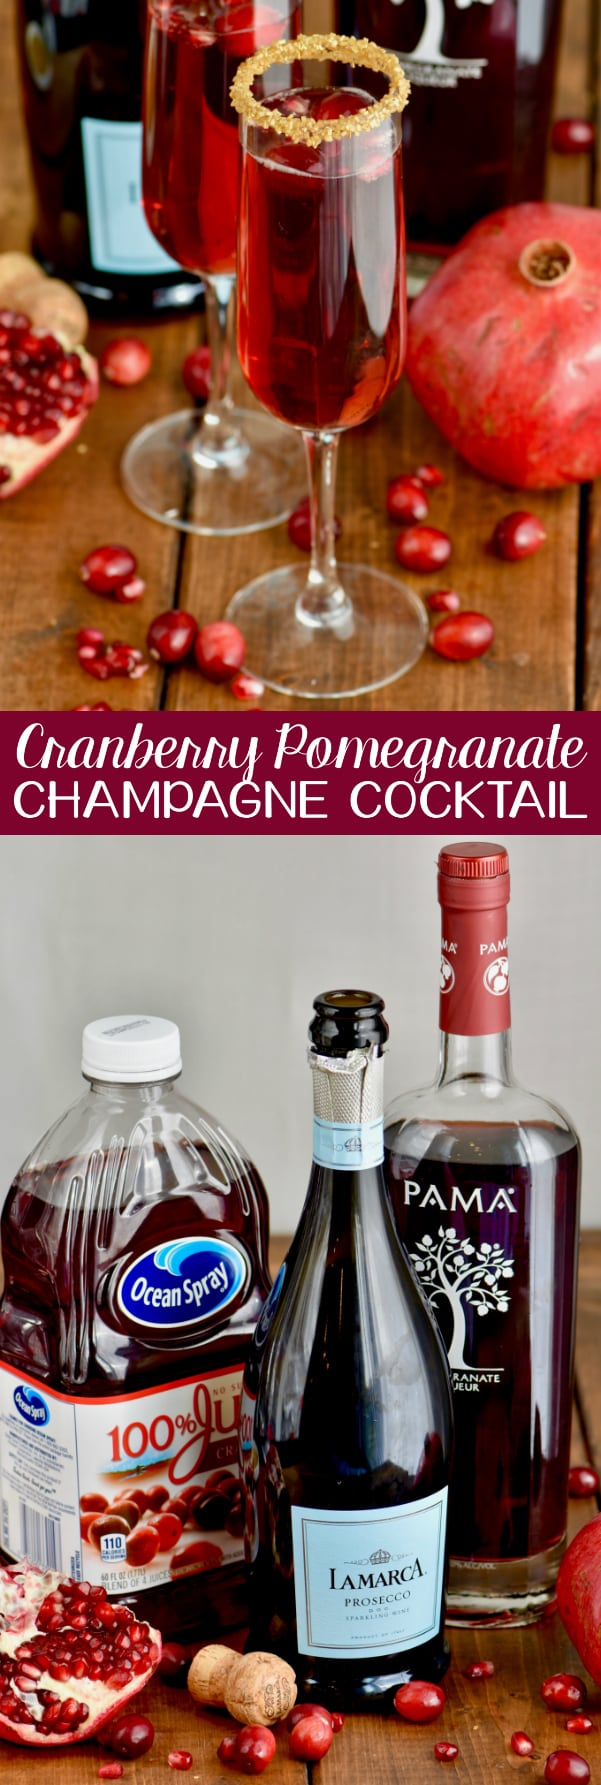 This Cranberry Pomegranate Champagne Cocktail is the perfect drink for your holiday party!  Make one for yourself or make a whole batch for a party!